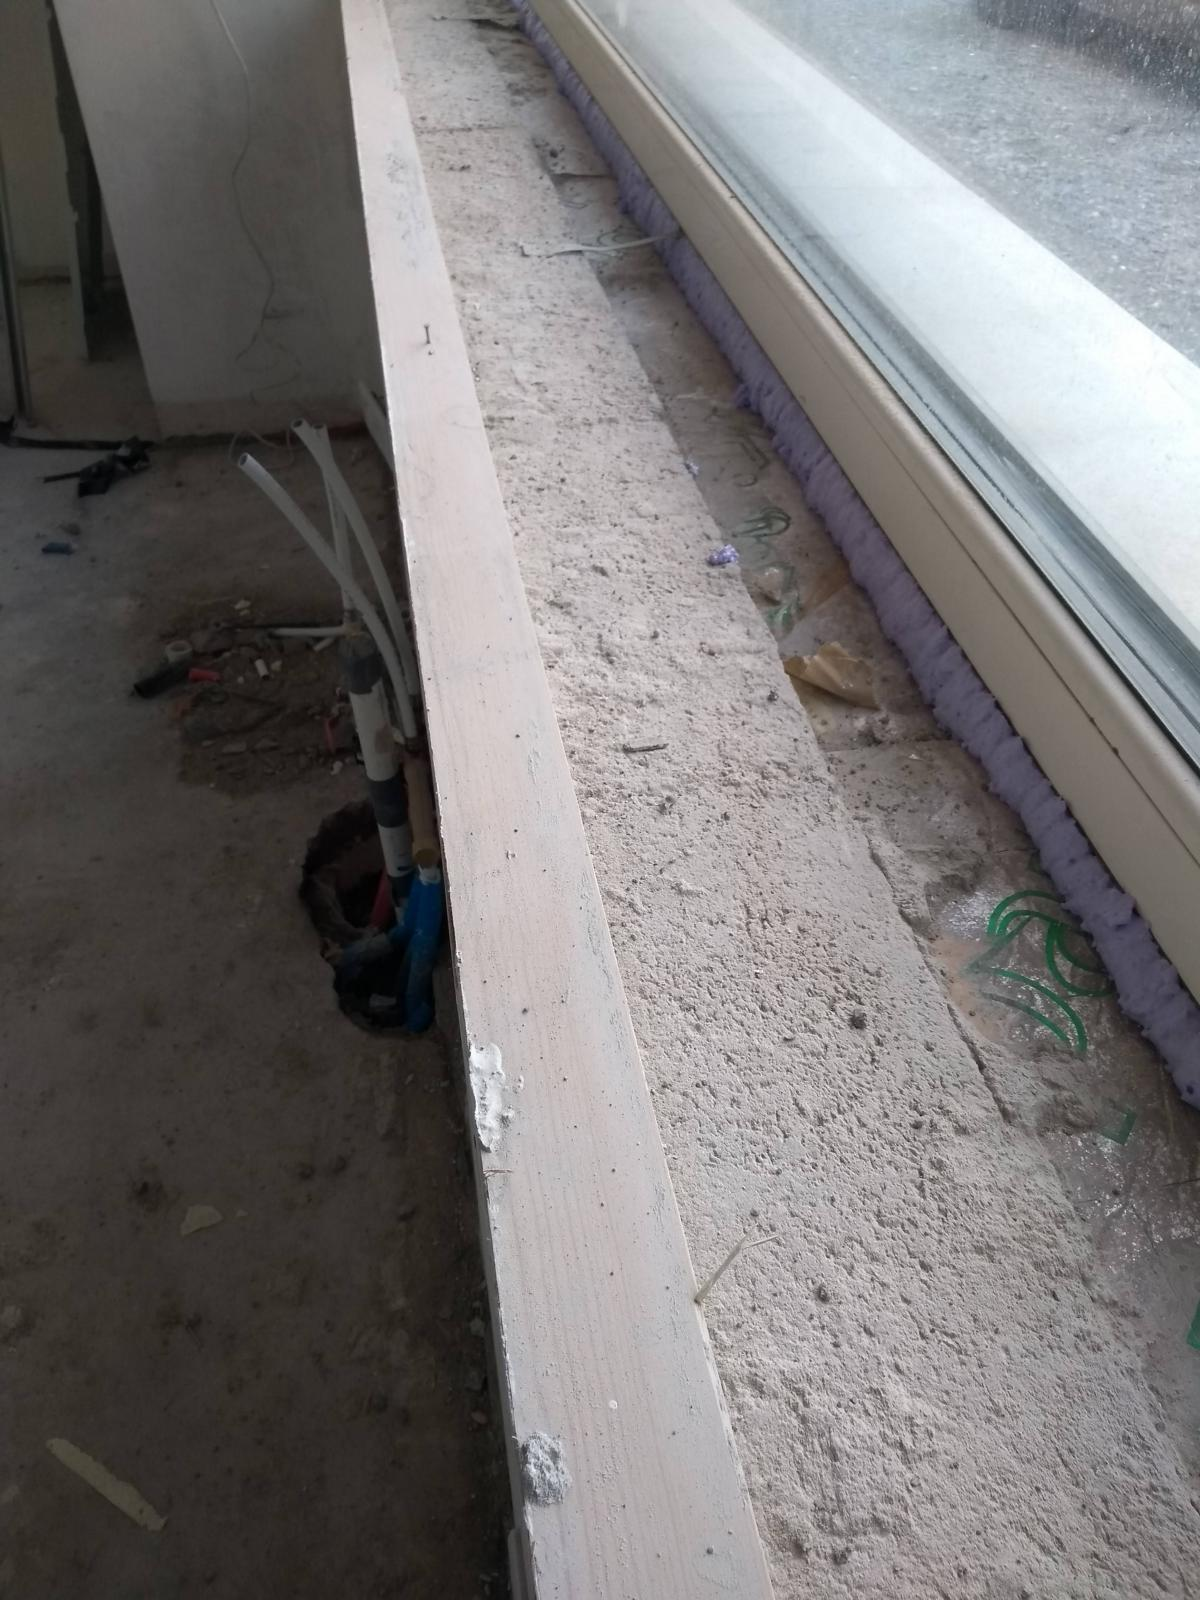 All dirt and mortar was removed to create a smooth surface. The gap between the cavity closer and the window frame has been sealed with PICHLER® air tight foam